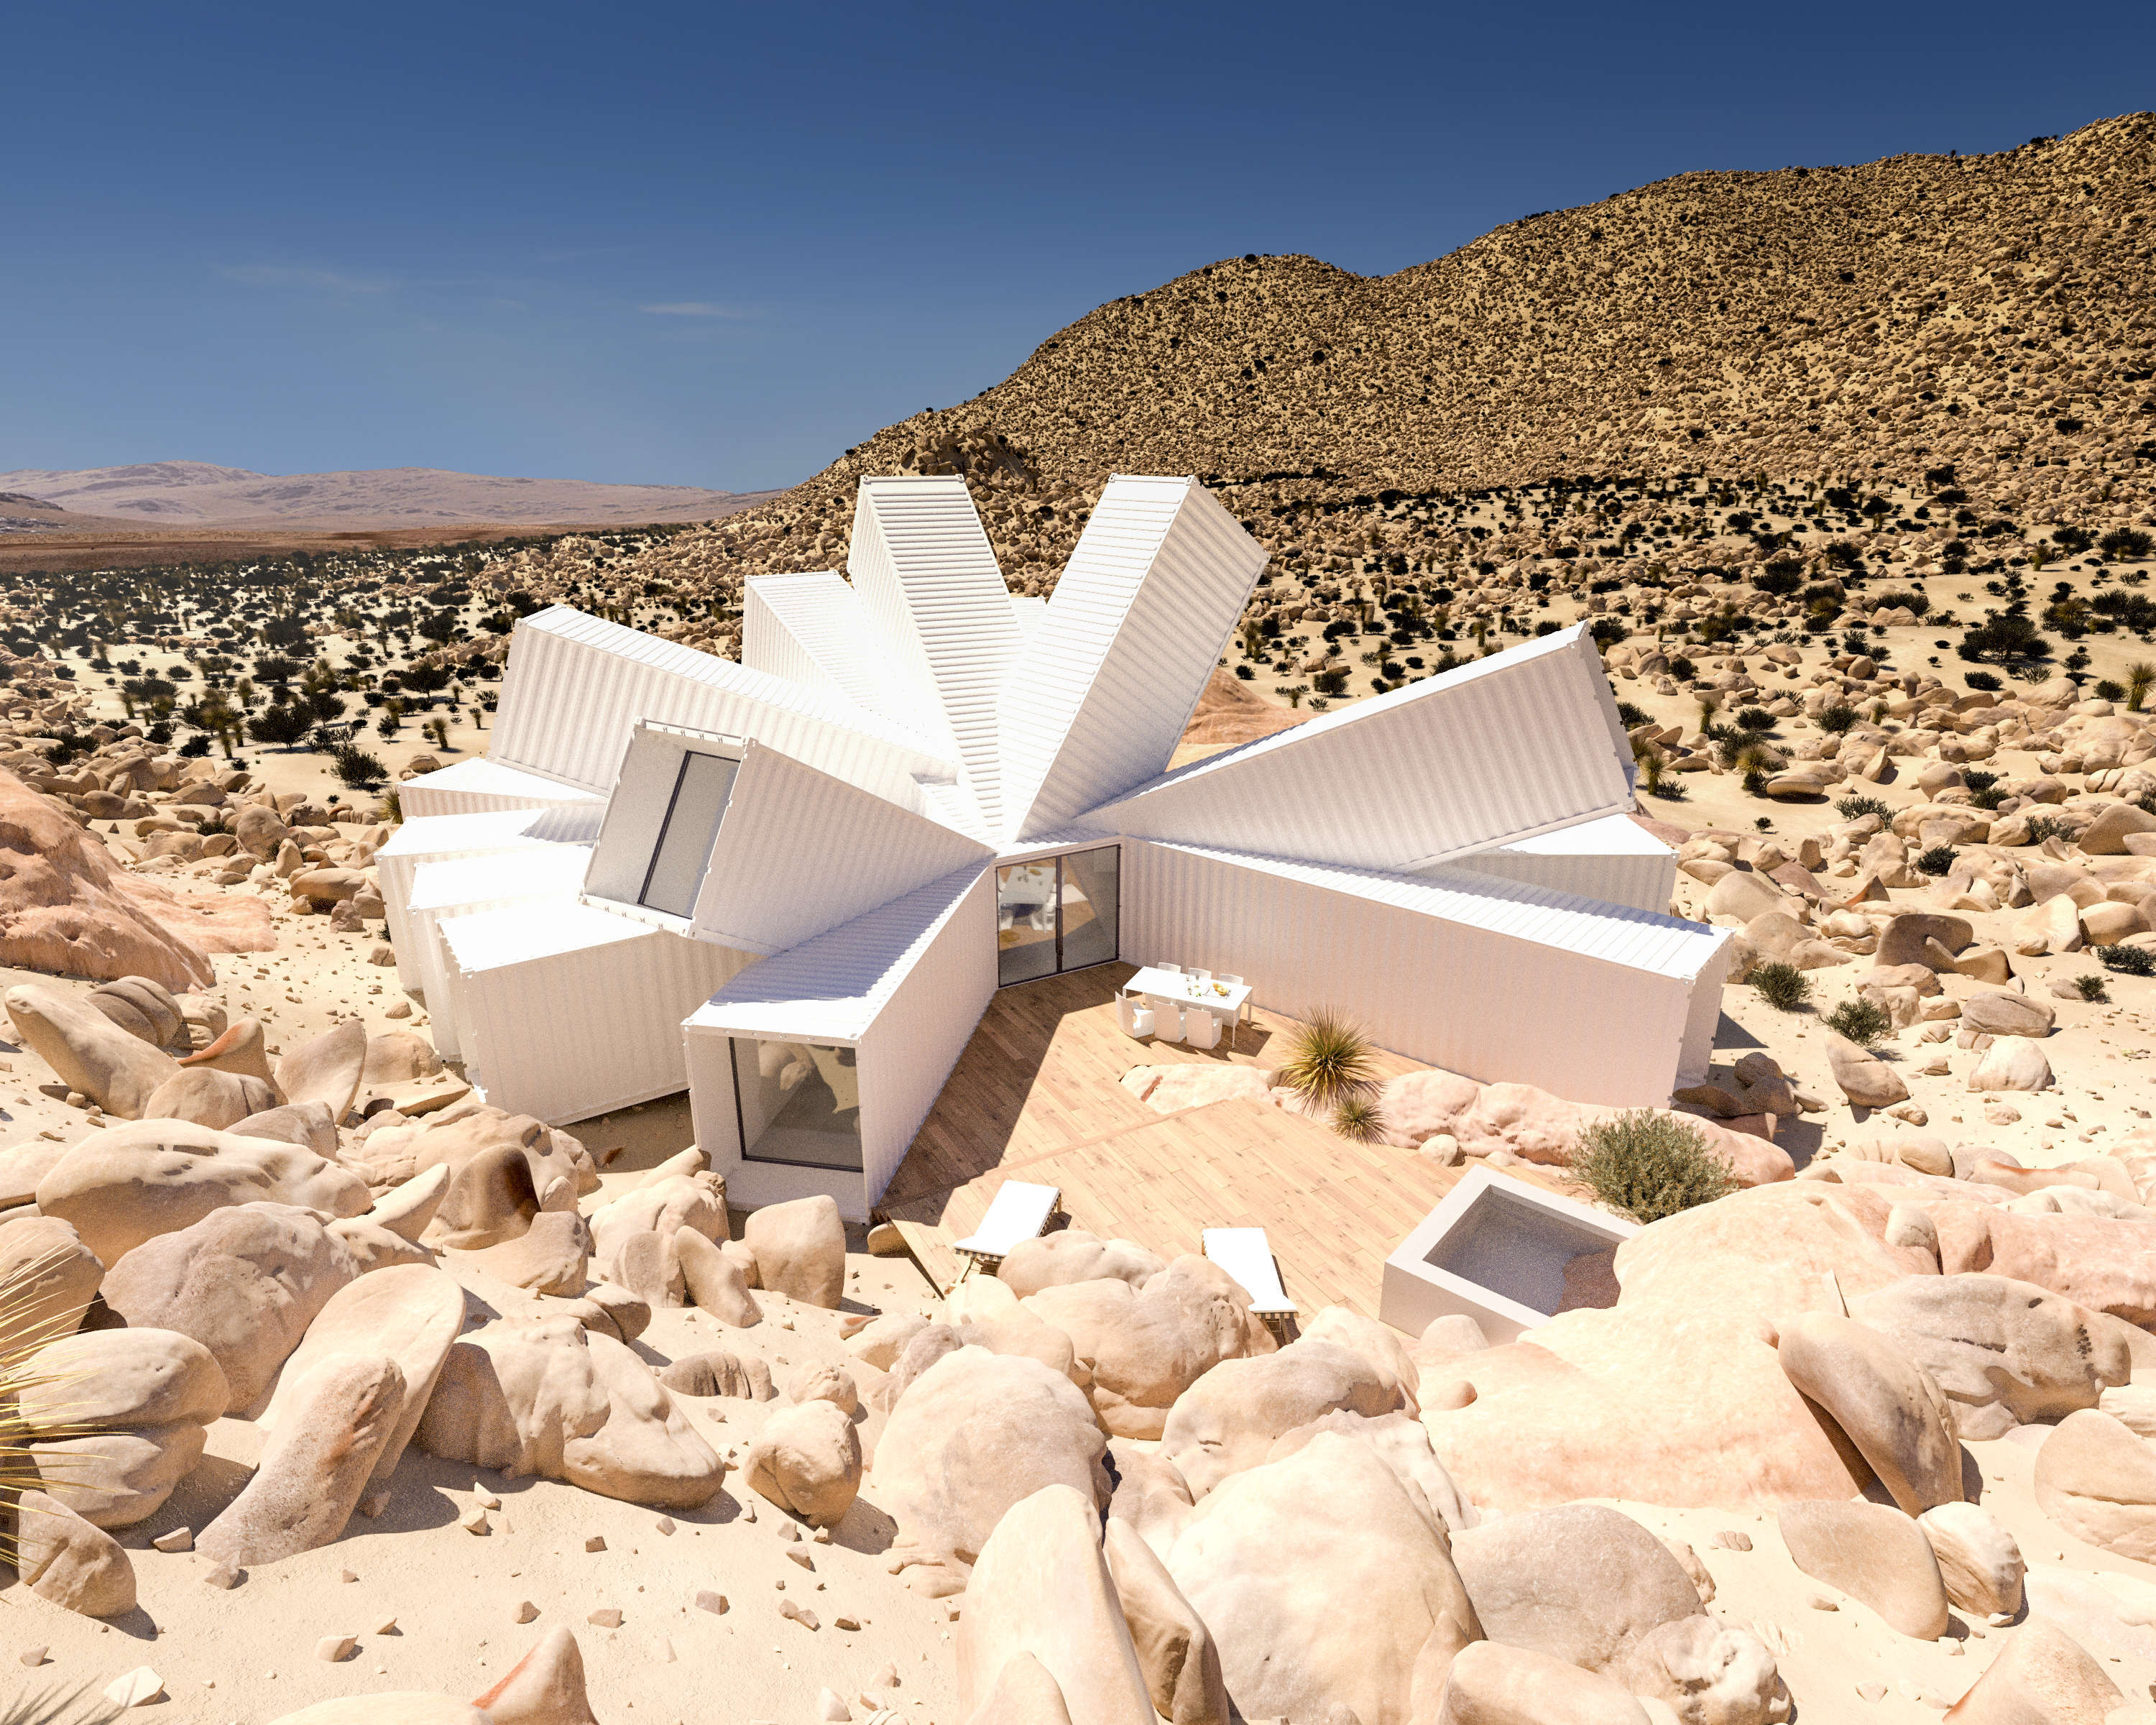 A photorealistic render of the Joshua Tree Residence. Image credit: Whitaker Studio